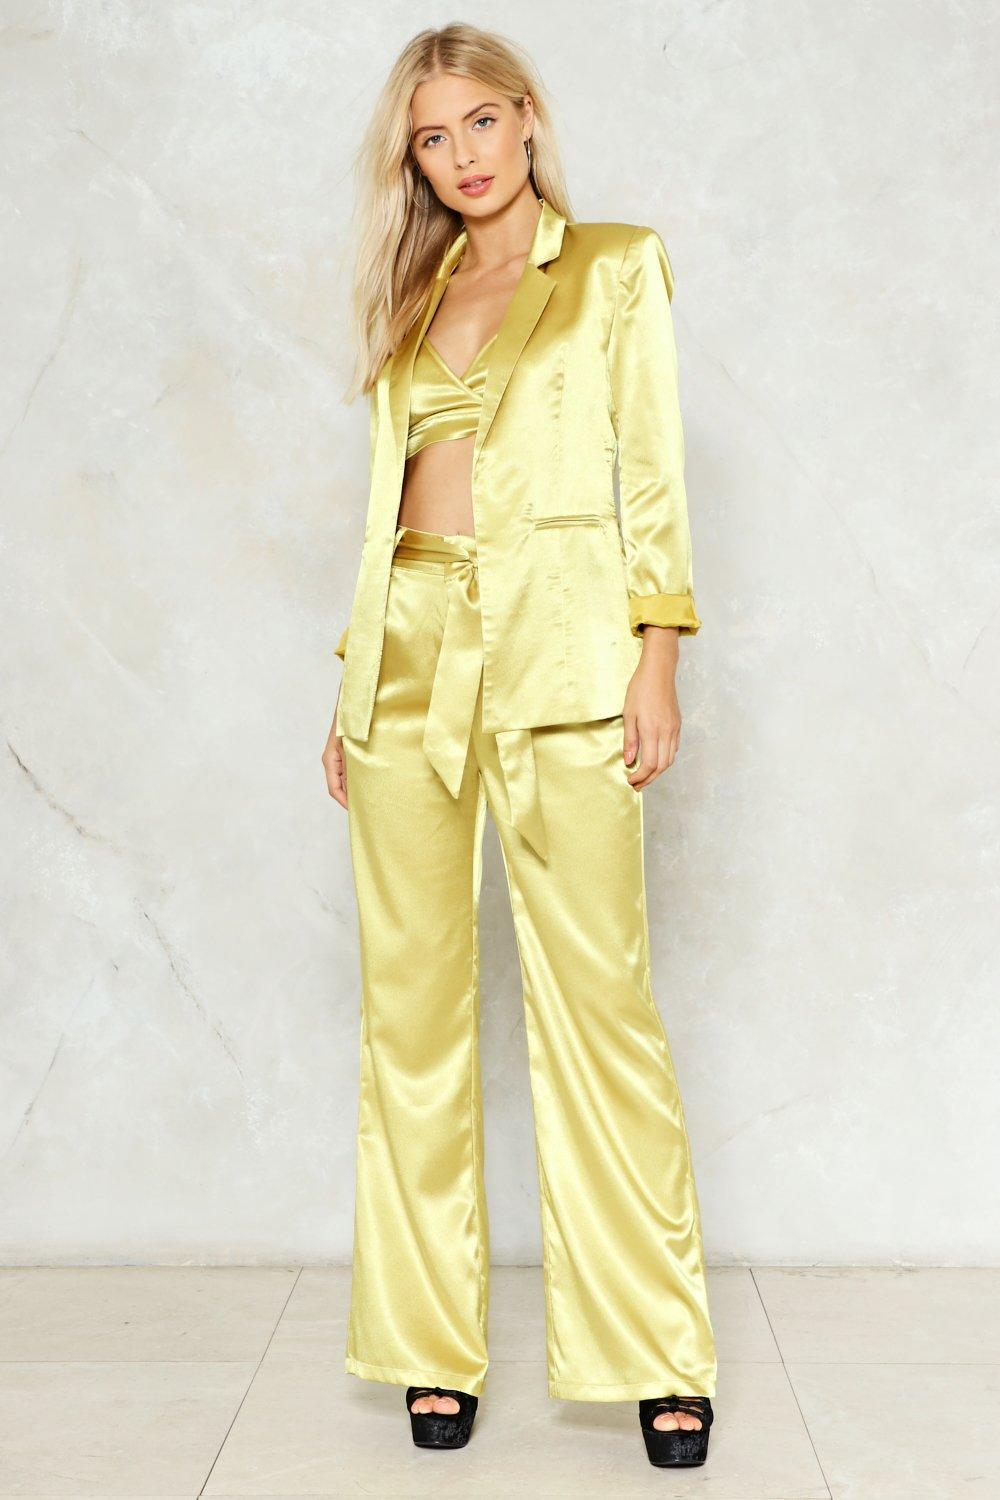 a33a5c078a6 Independent Women Satin Blazer. Hover to zoom